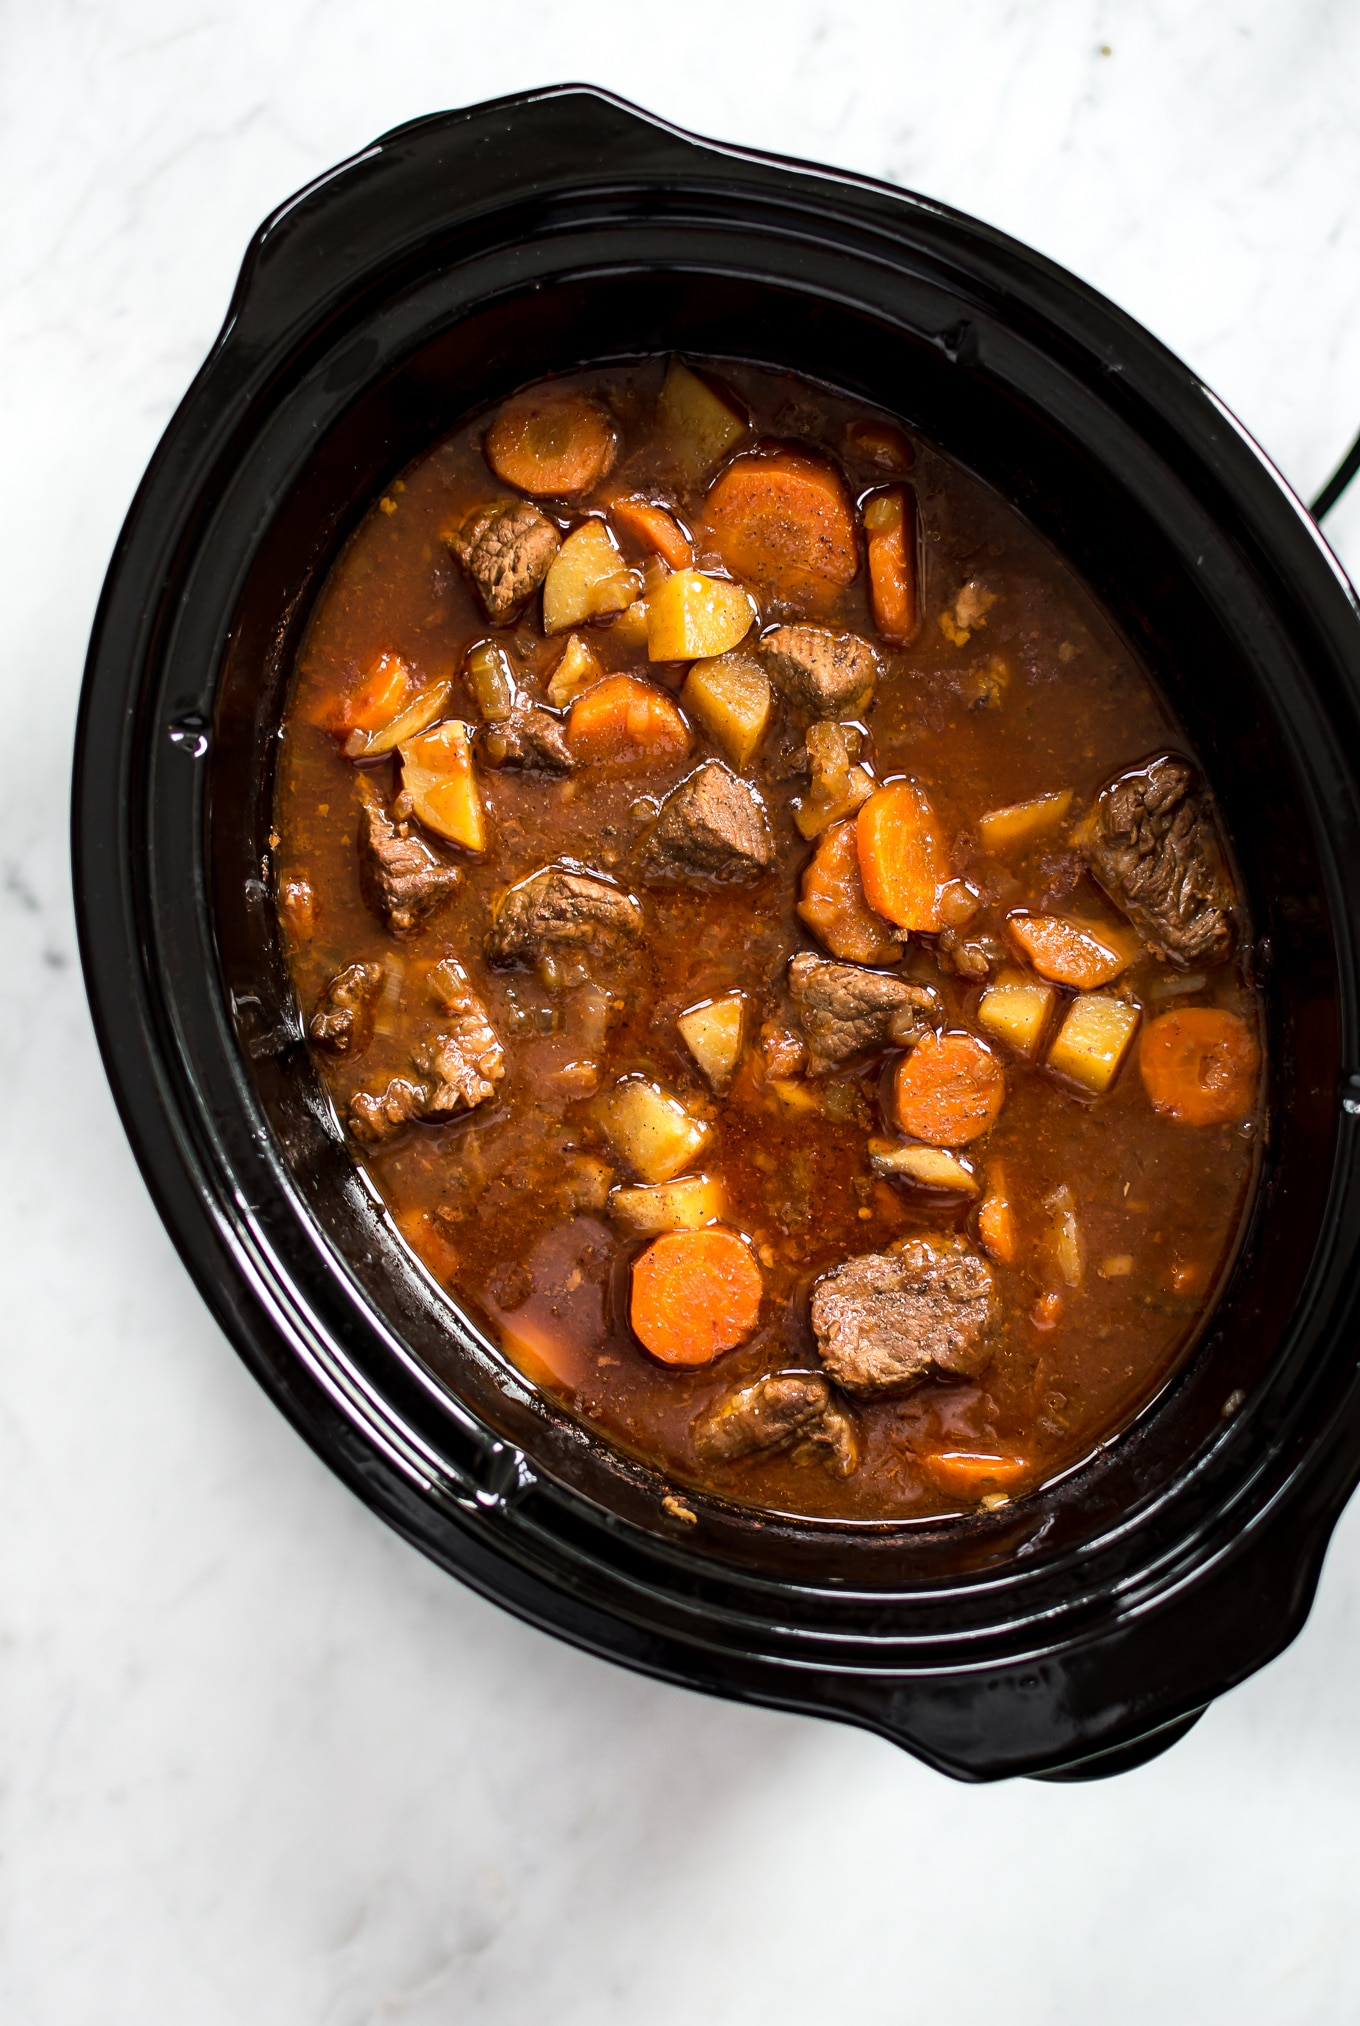 This Crockpot beef stew recipe is simple, hearty, and totally delicious. It's a comforting classic dish that the whole family will love.